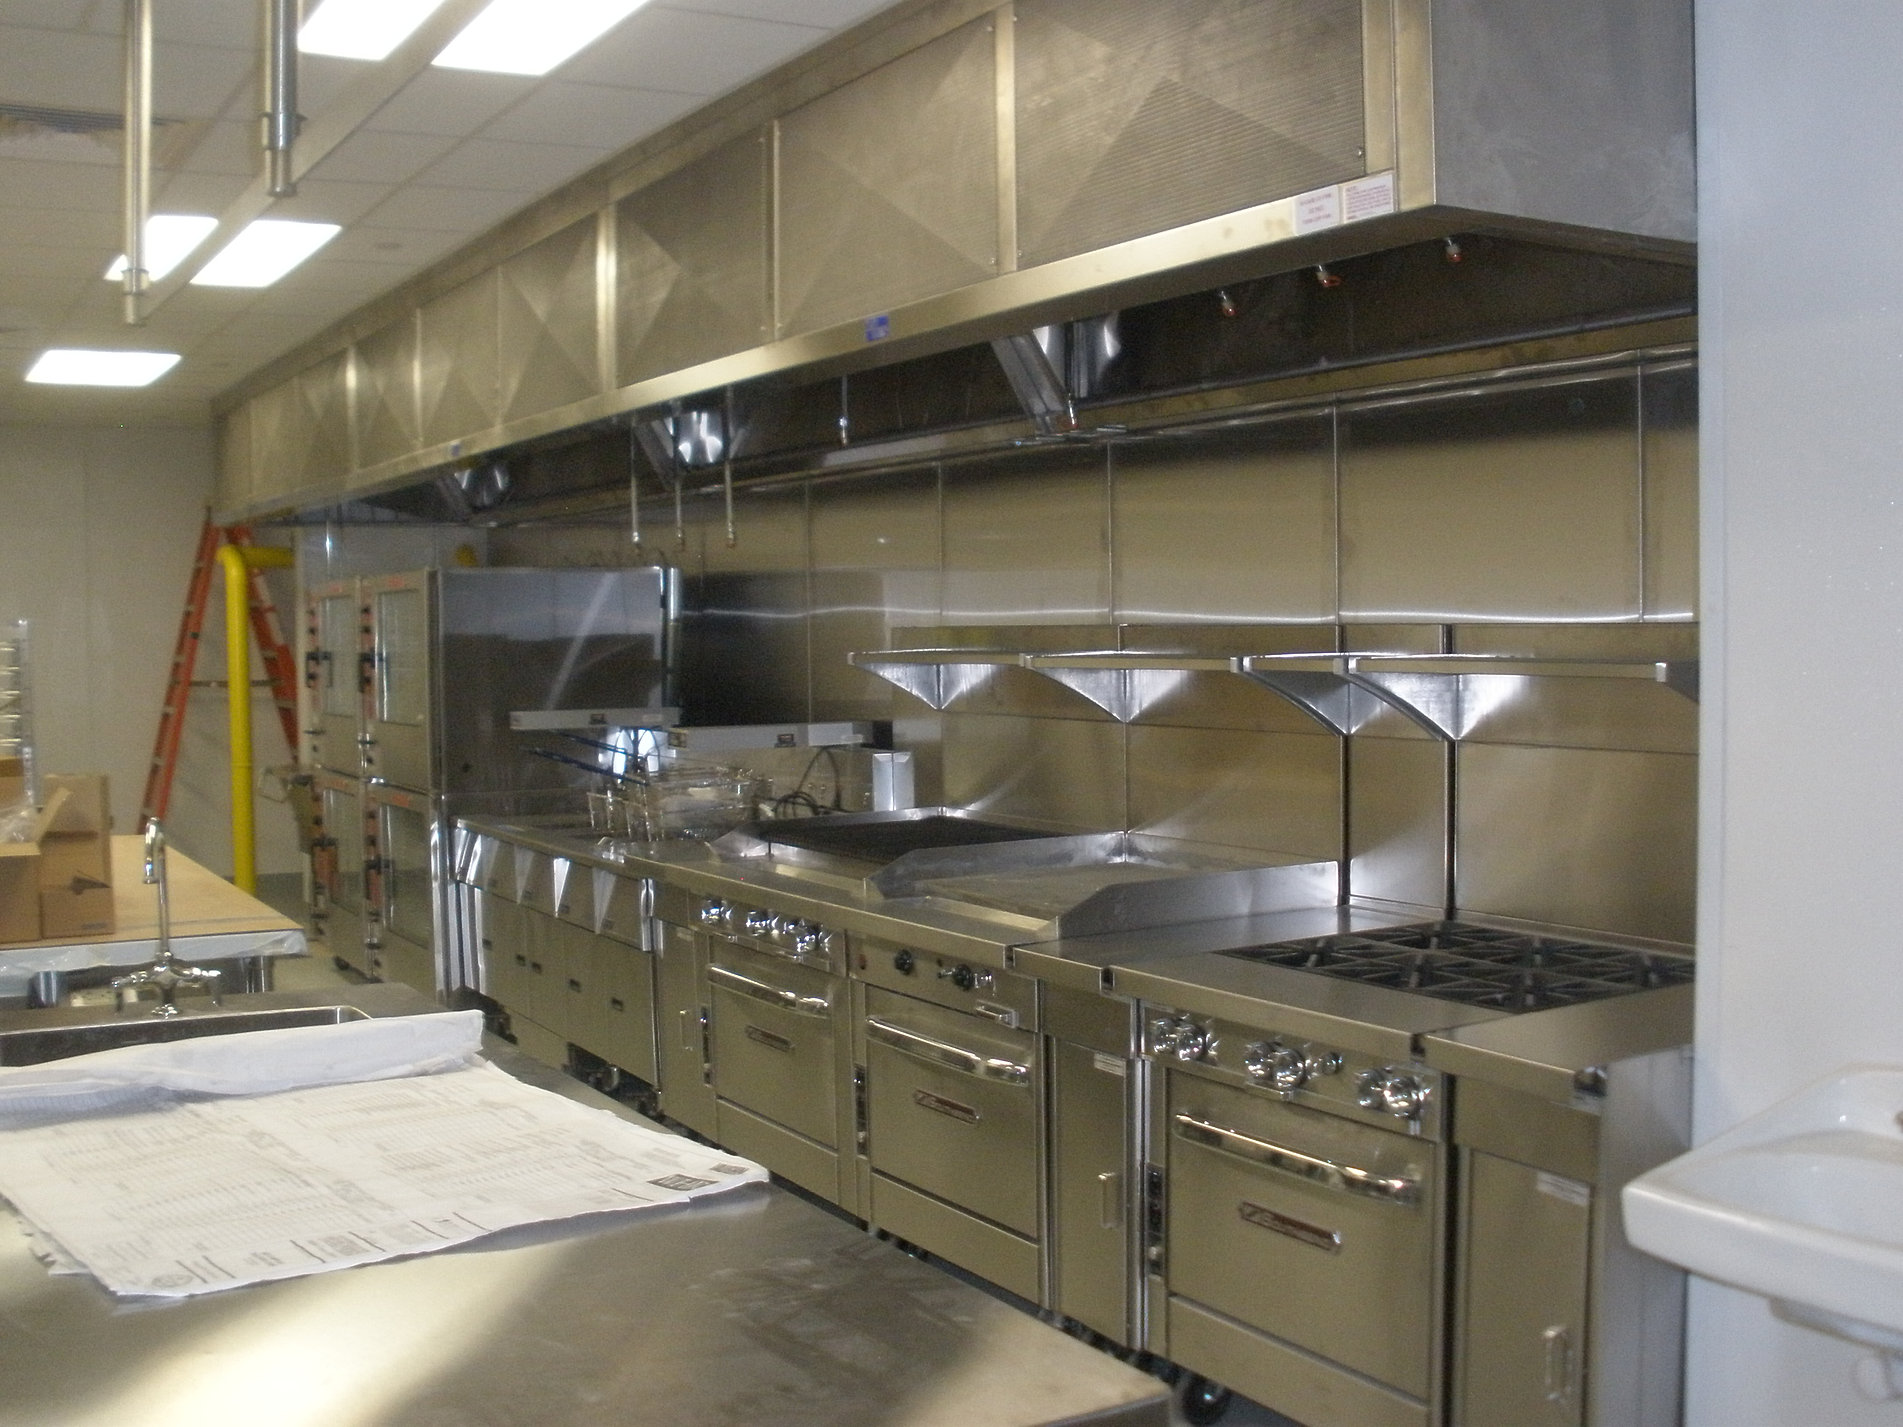 Restaurant Kitchen Equipment Repair we are dallas fort worthu0027s leading commercial kitchen